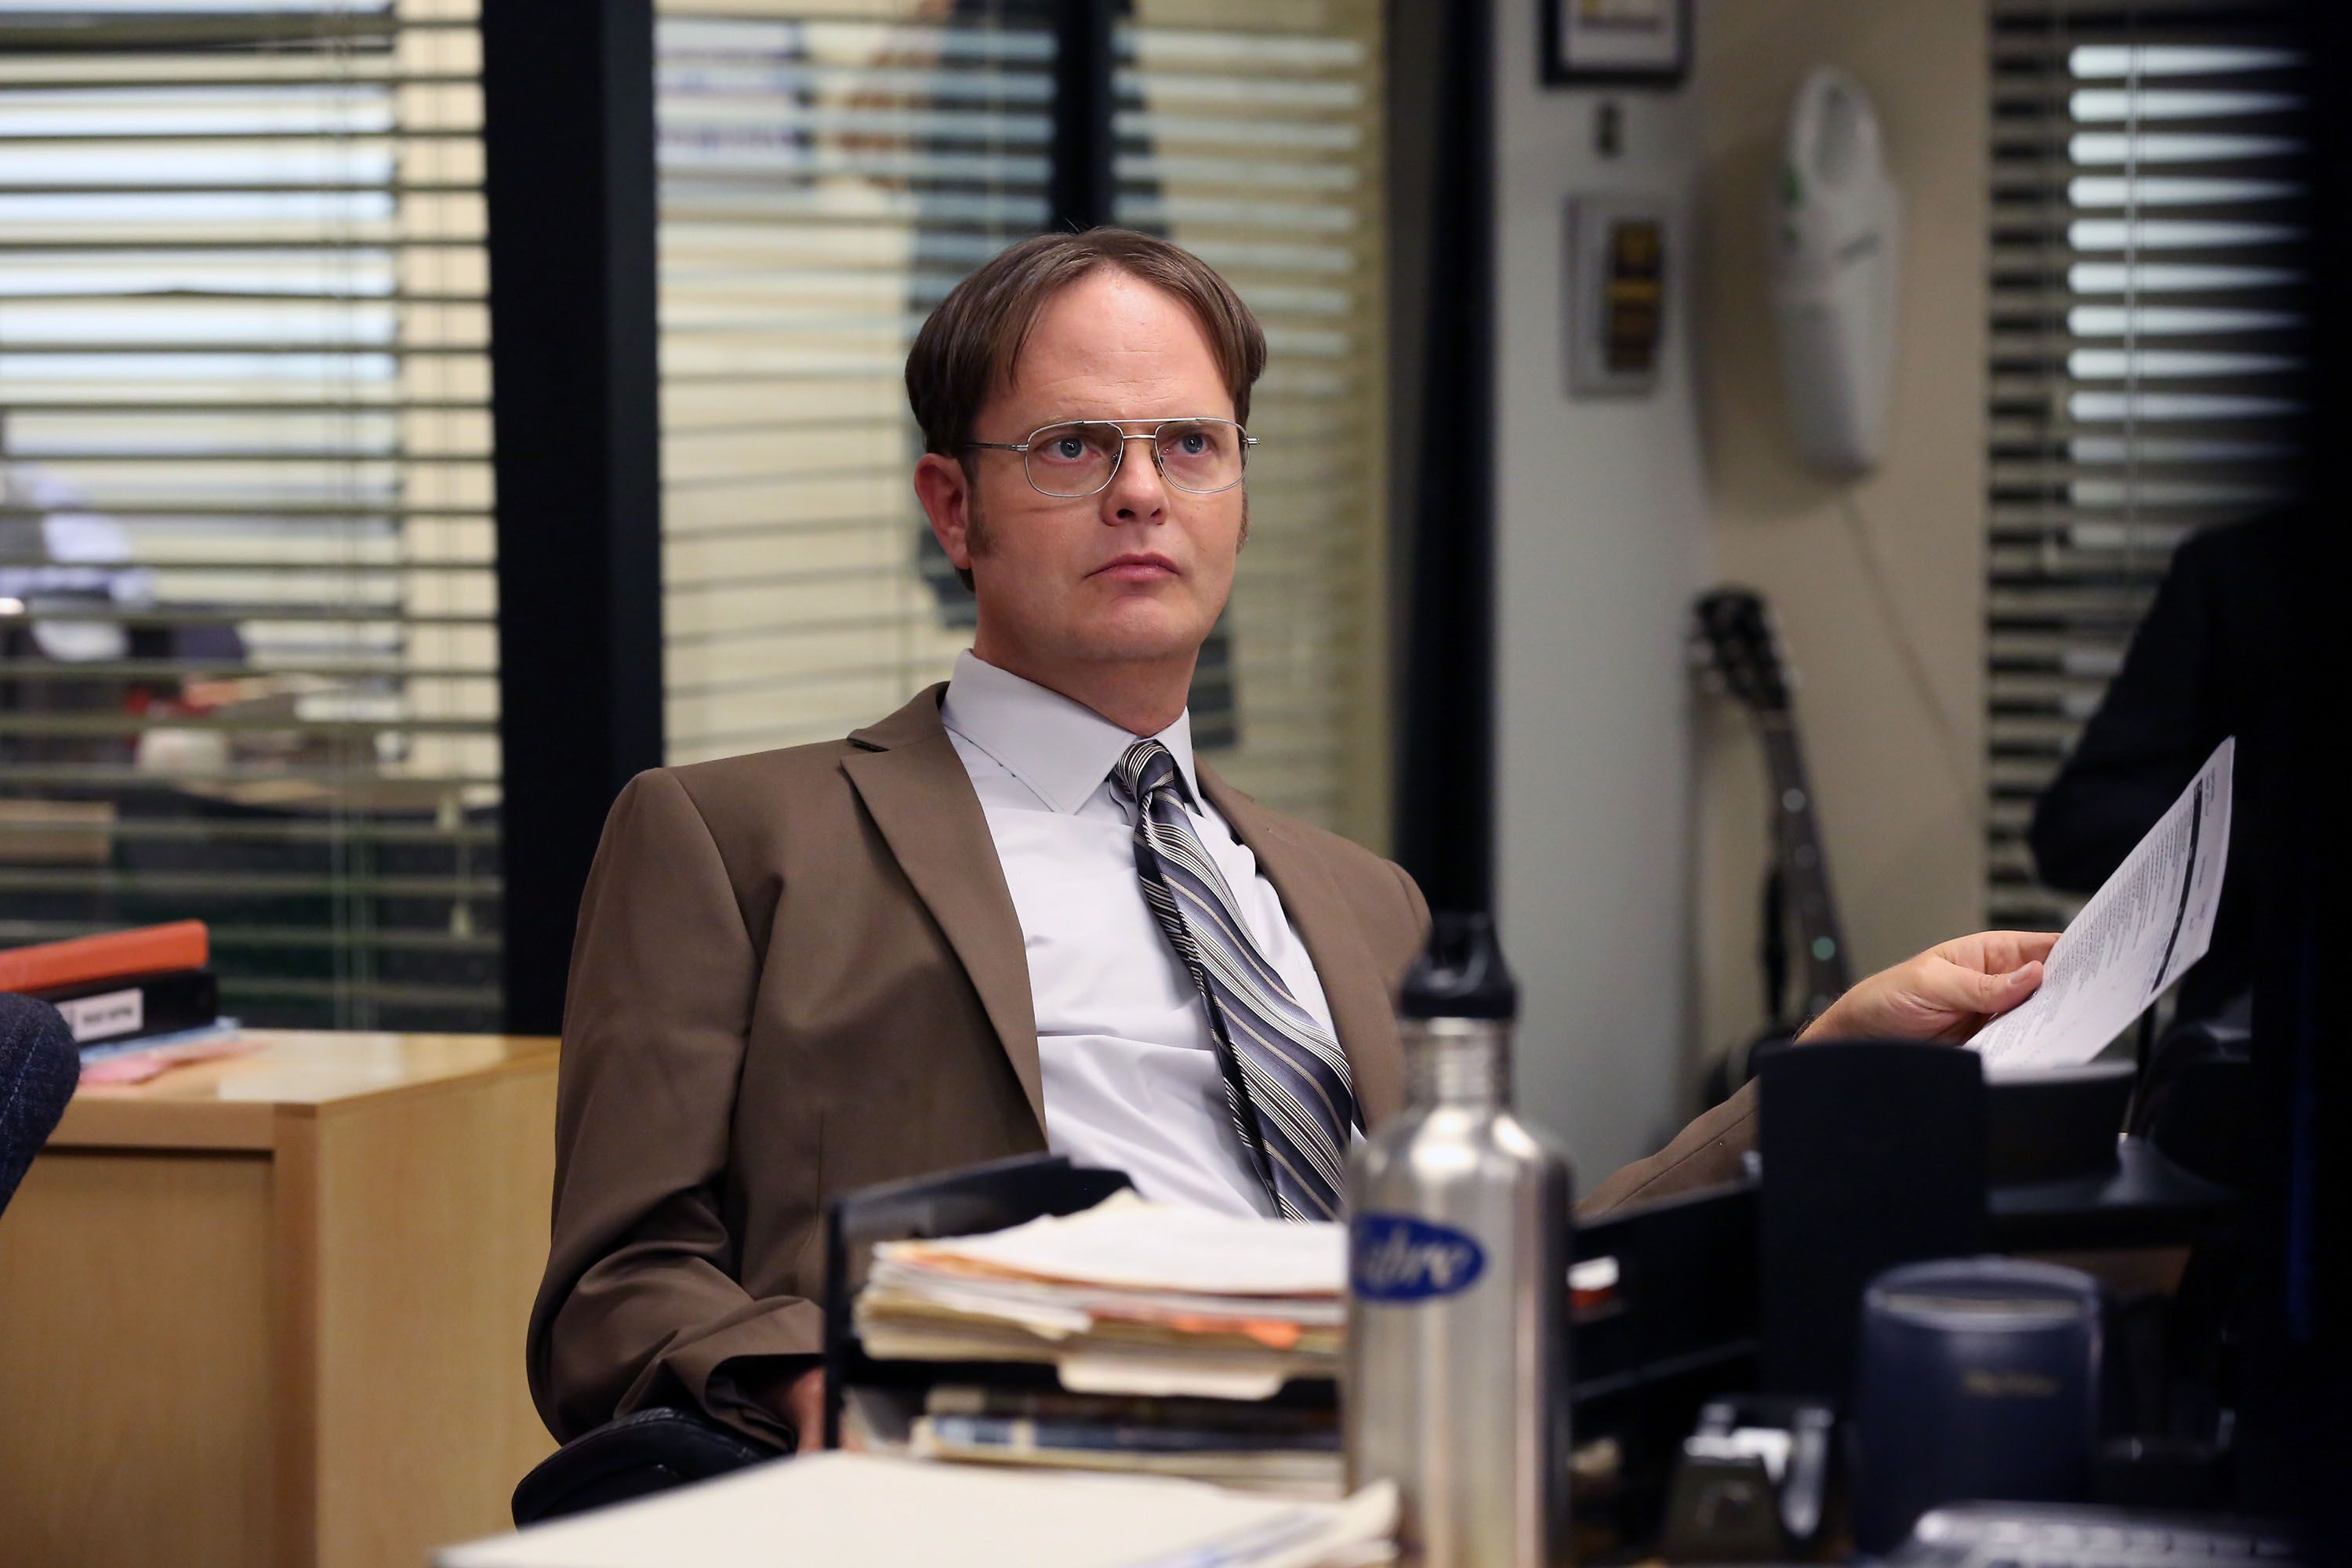 Rainn Wilson portrayed nerde Dwight in The Office / Getty Images